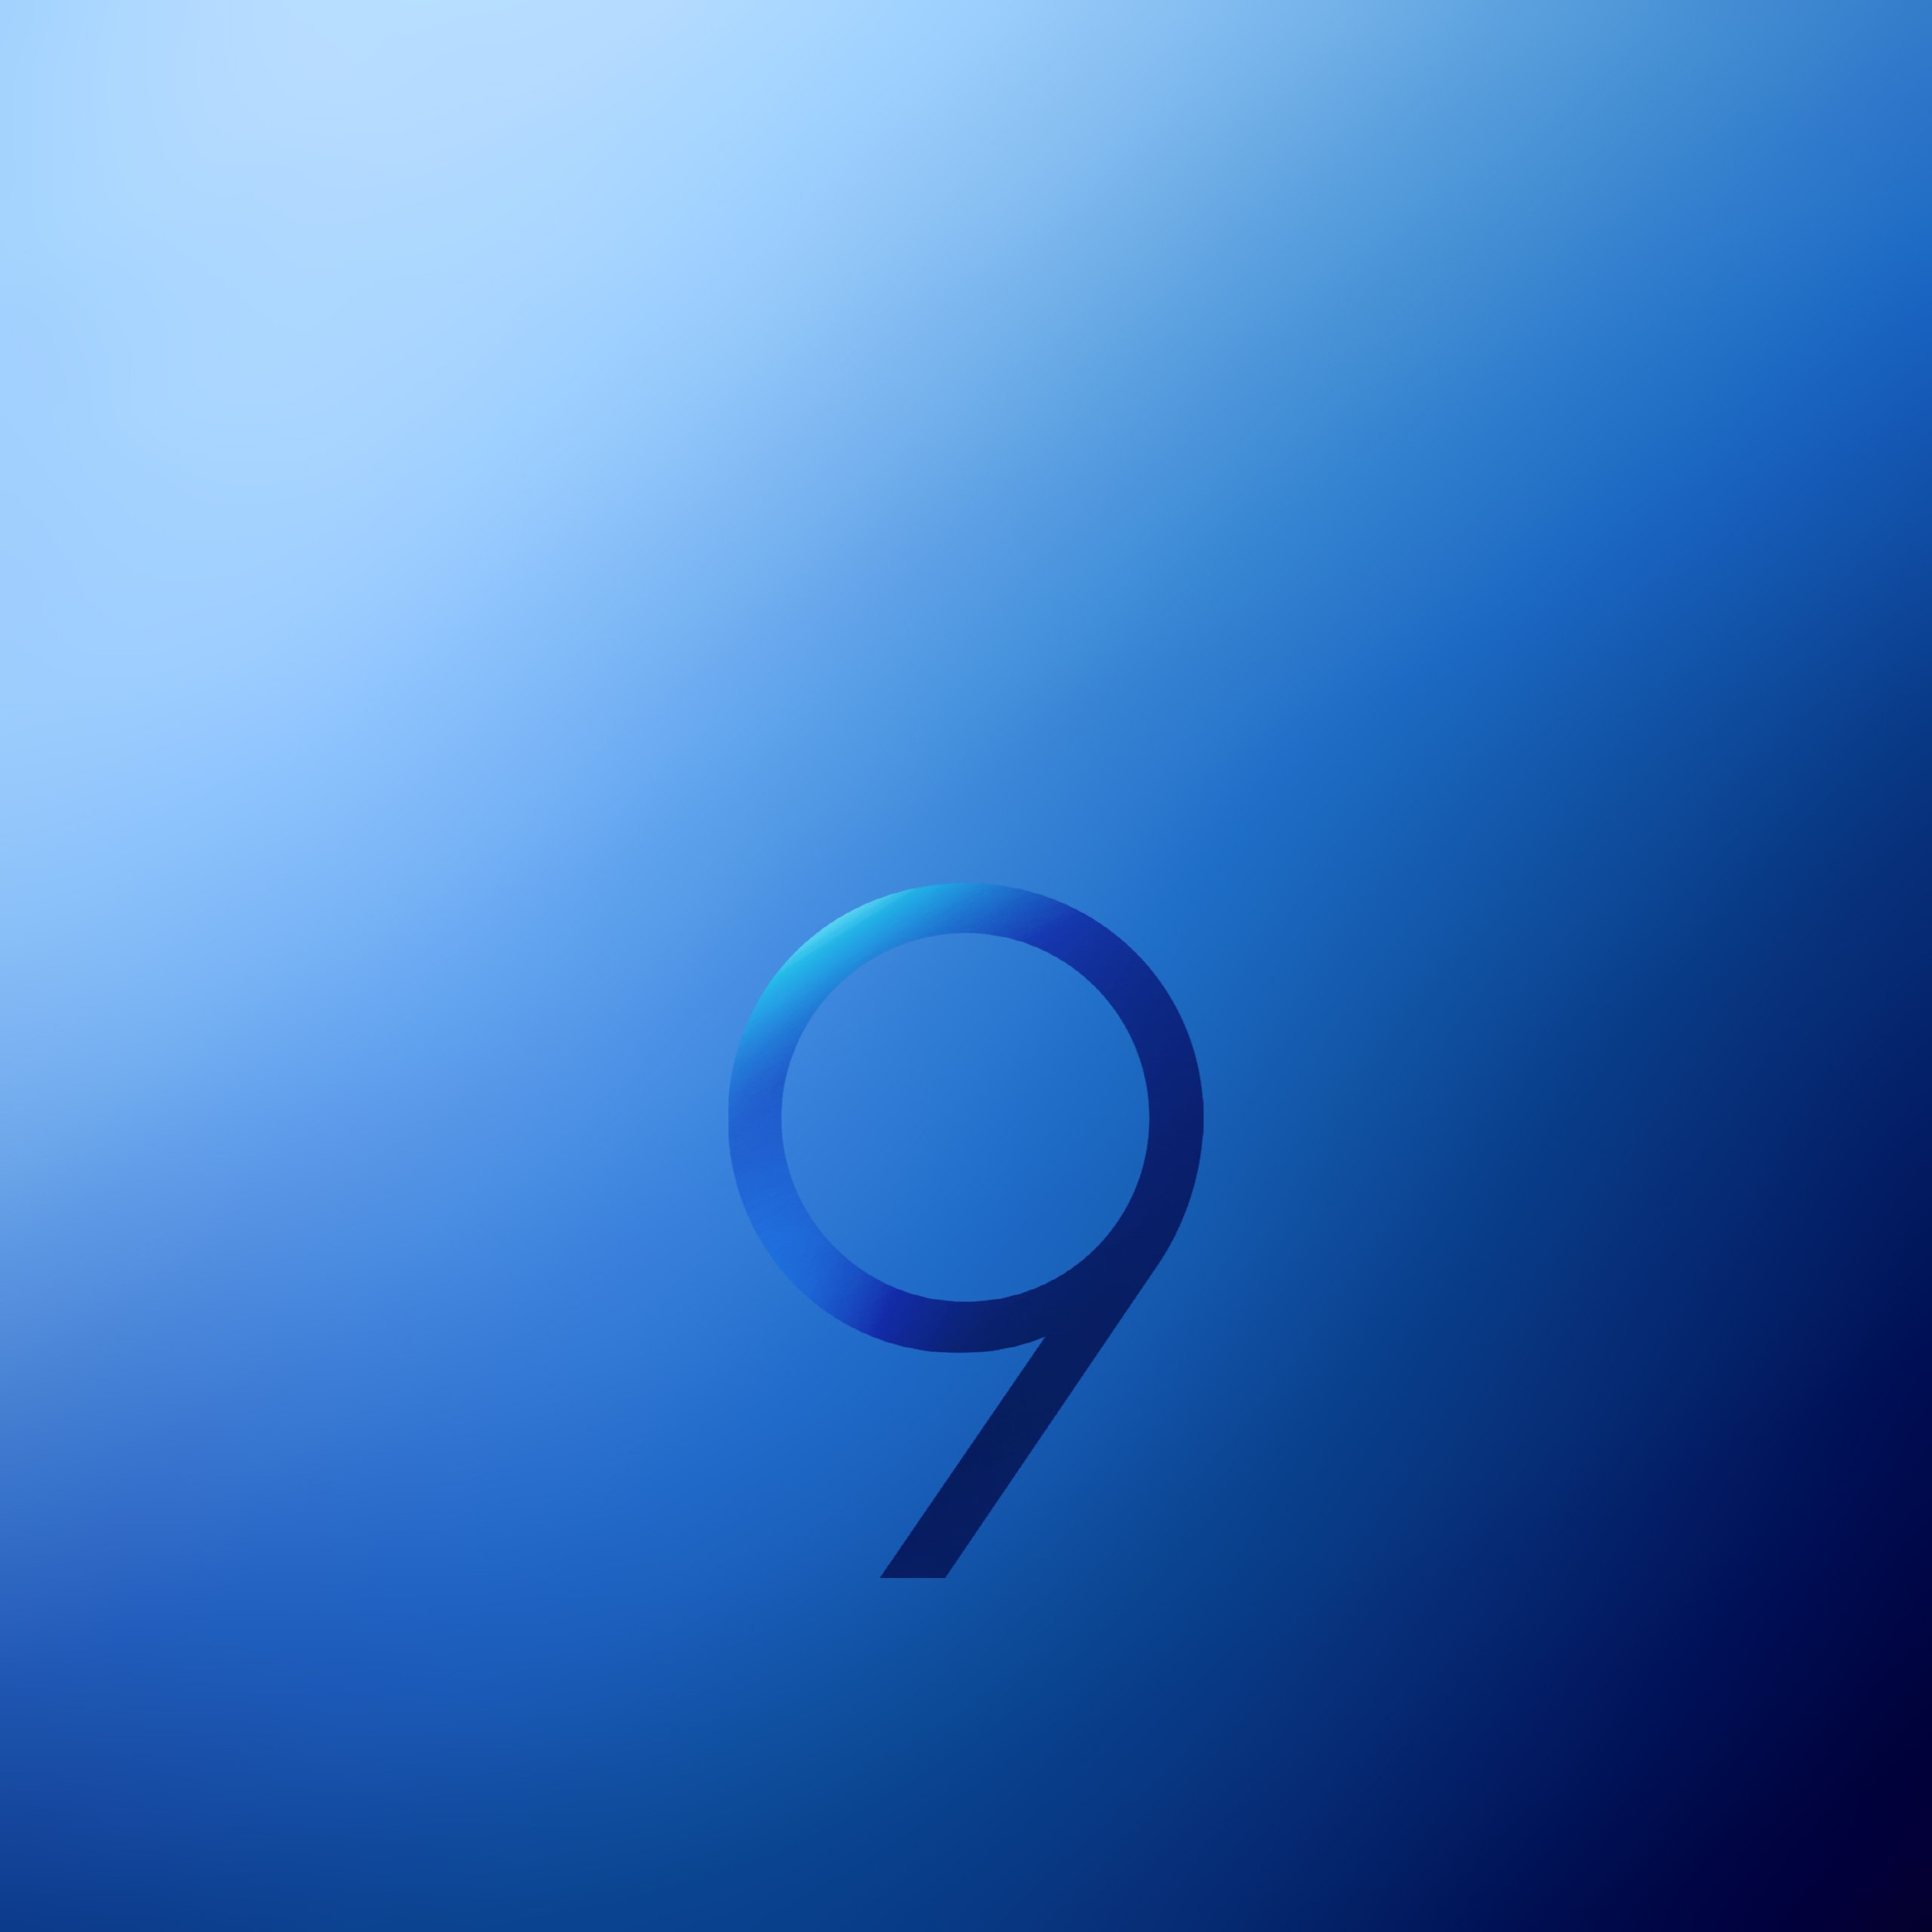 Samsung-Galaxy-S9-Official-Stock-QHD-Wallpapers-Mohamedovic.com (6)